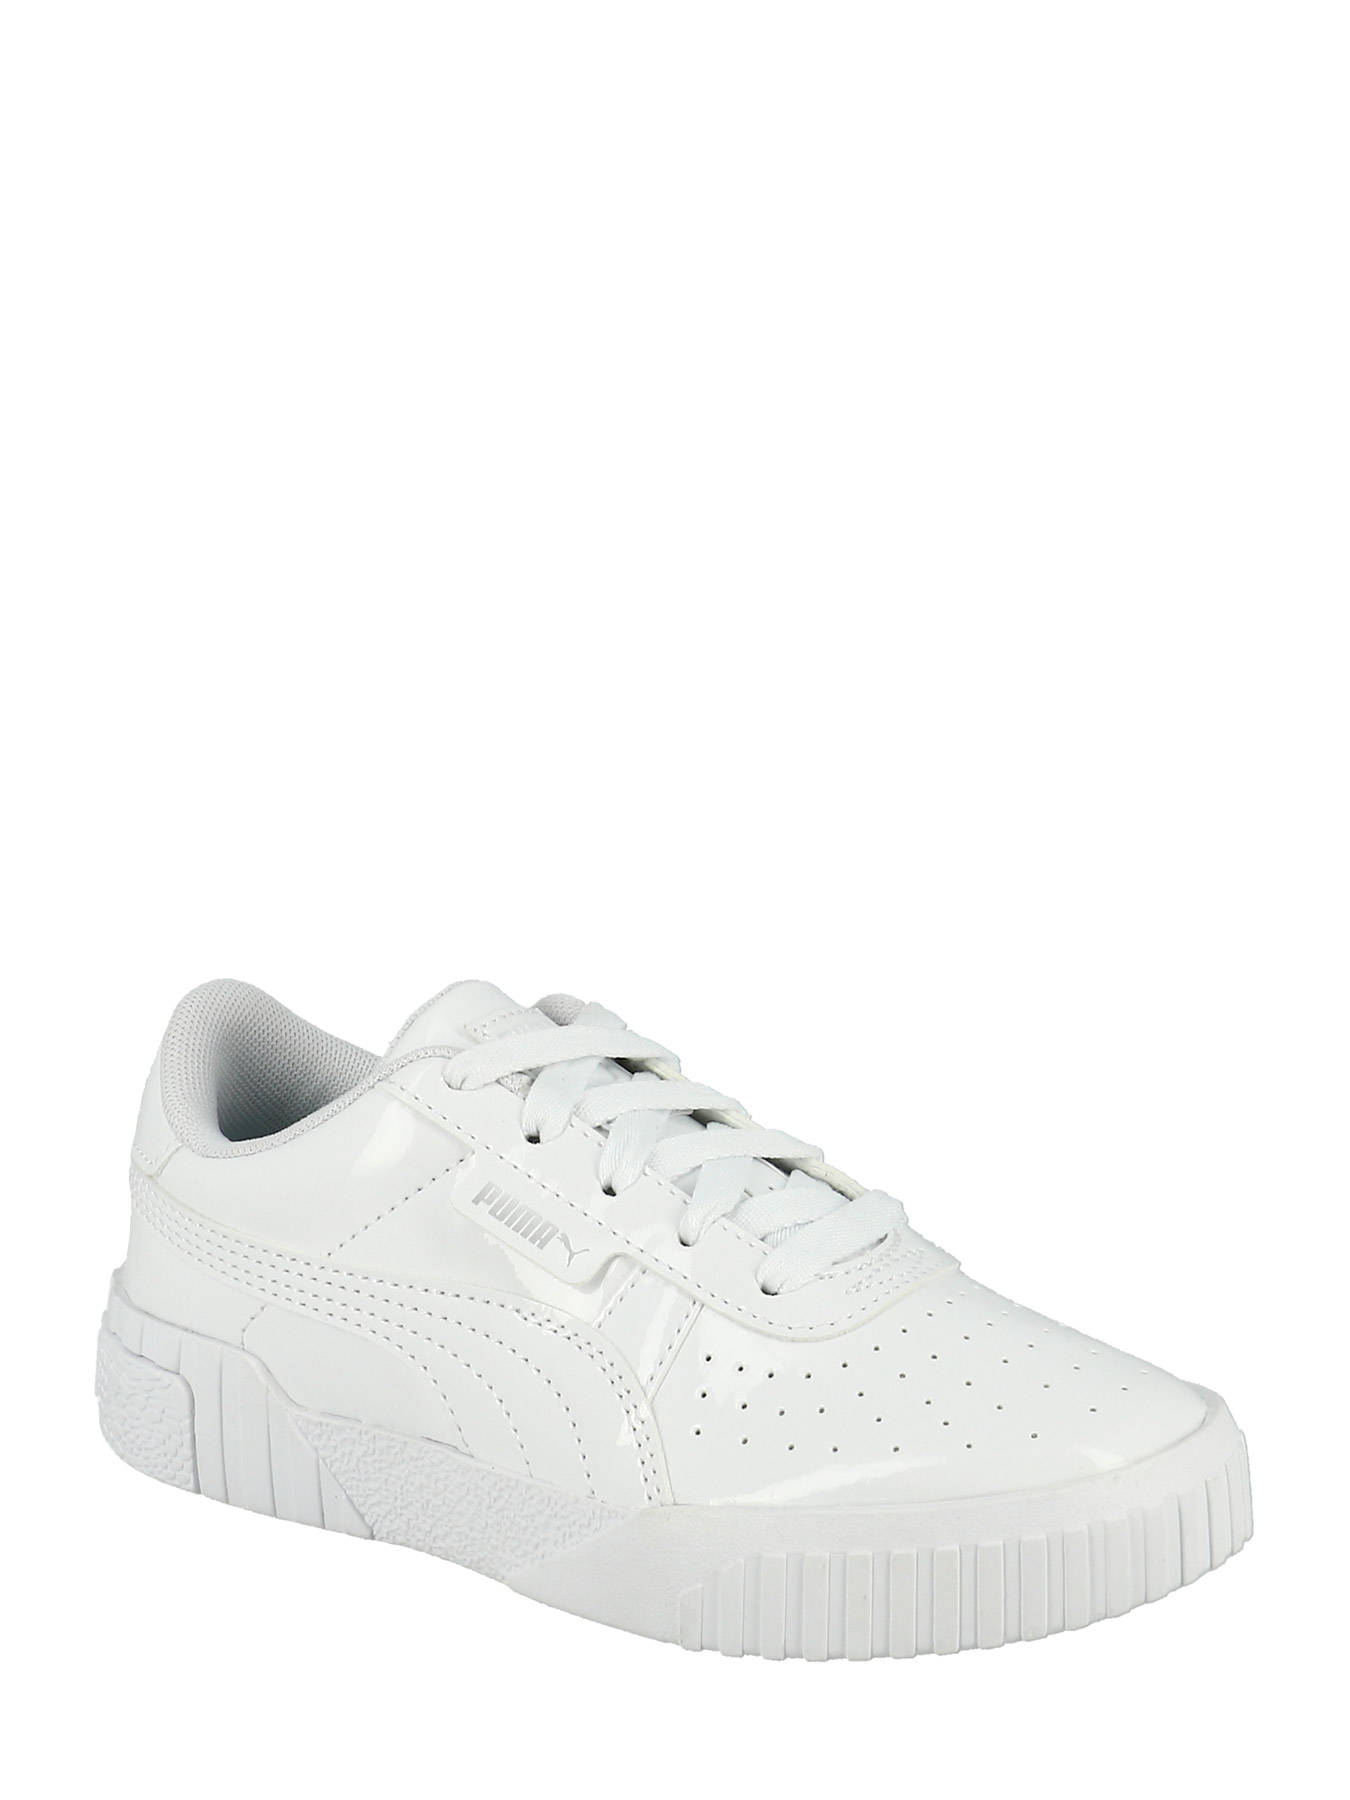 Puma Sneakers PS CALI PATENT - best prices